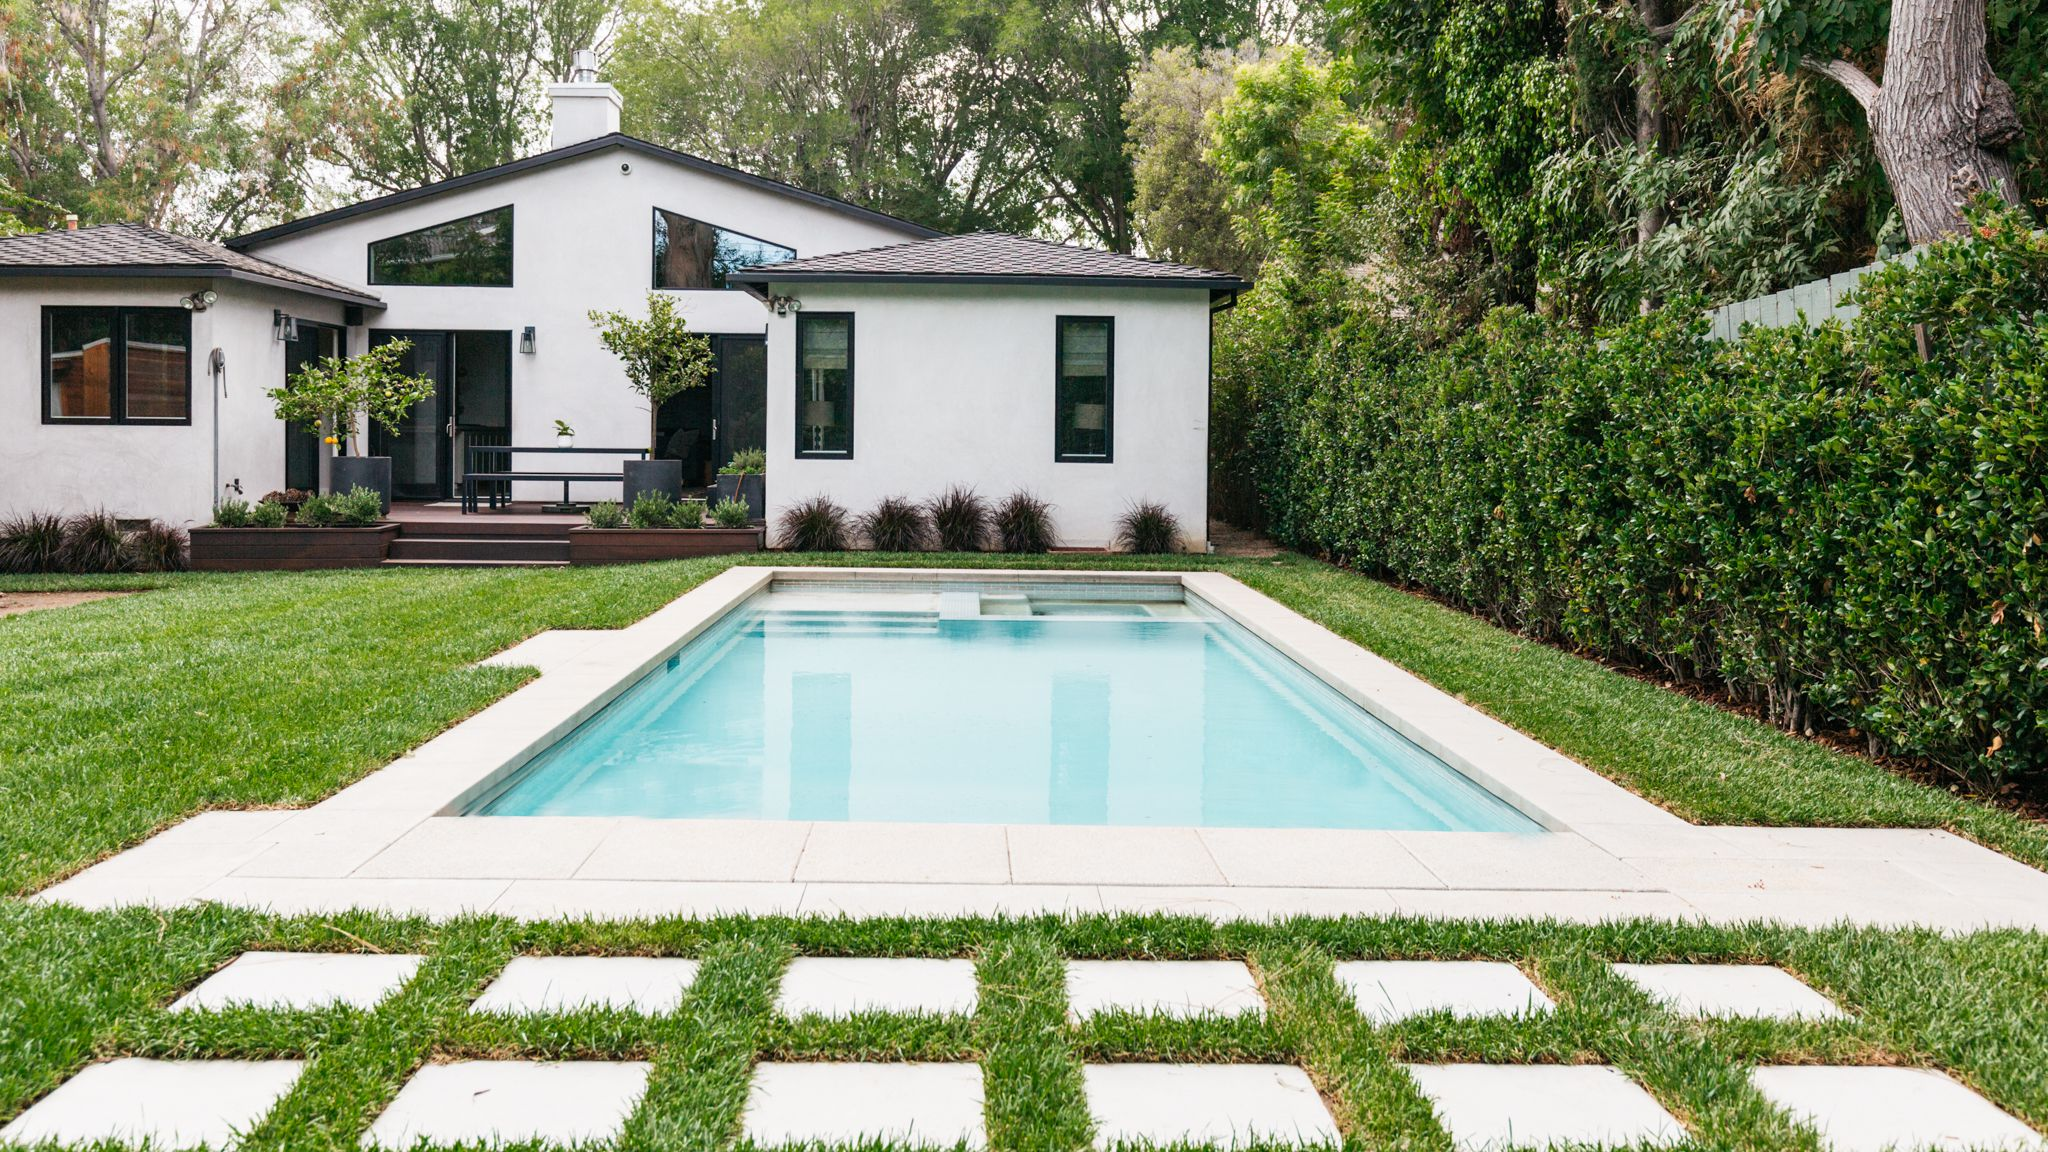 20 Small Swimming Pools With Big Style